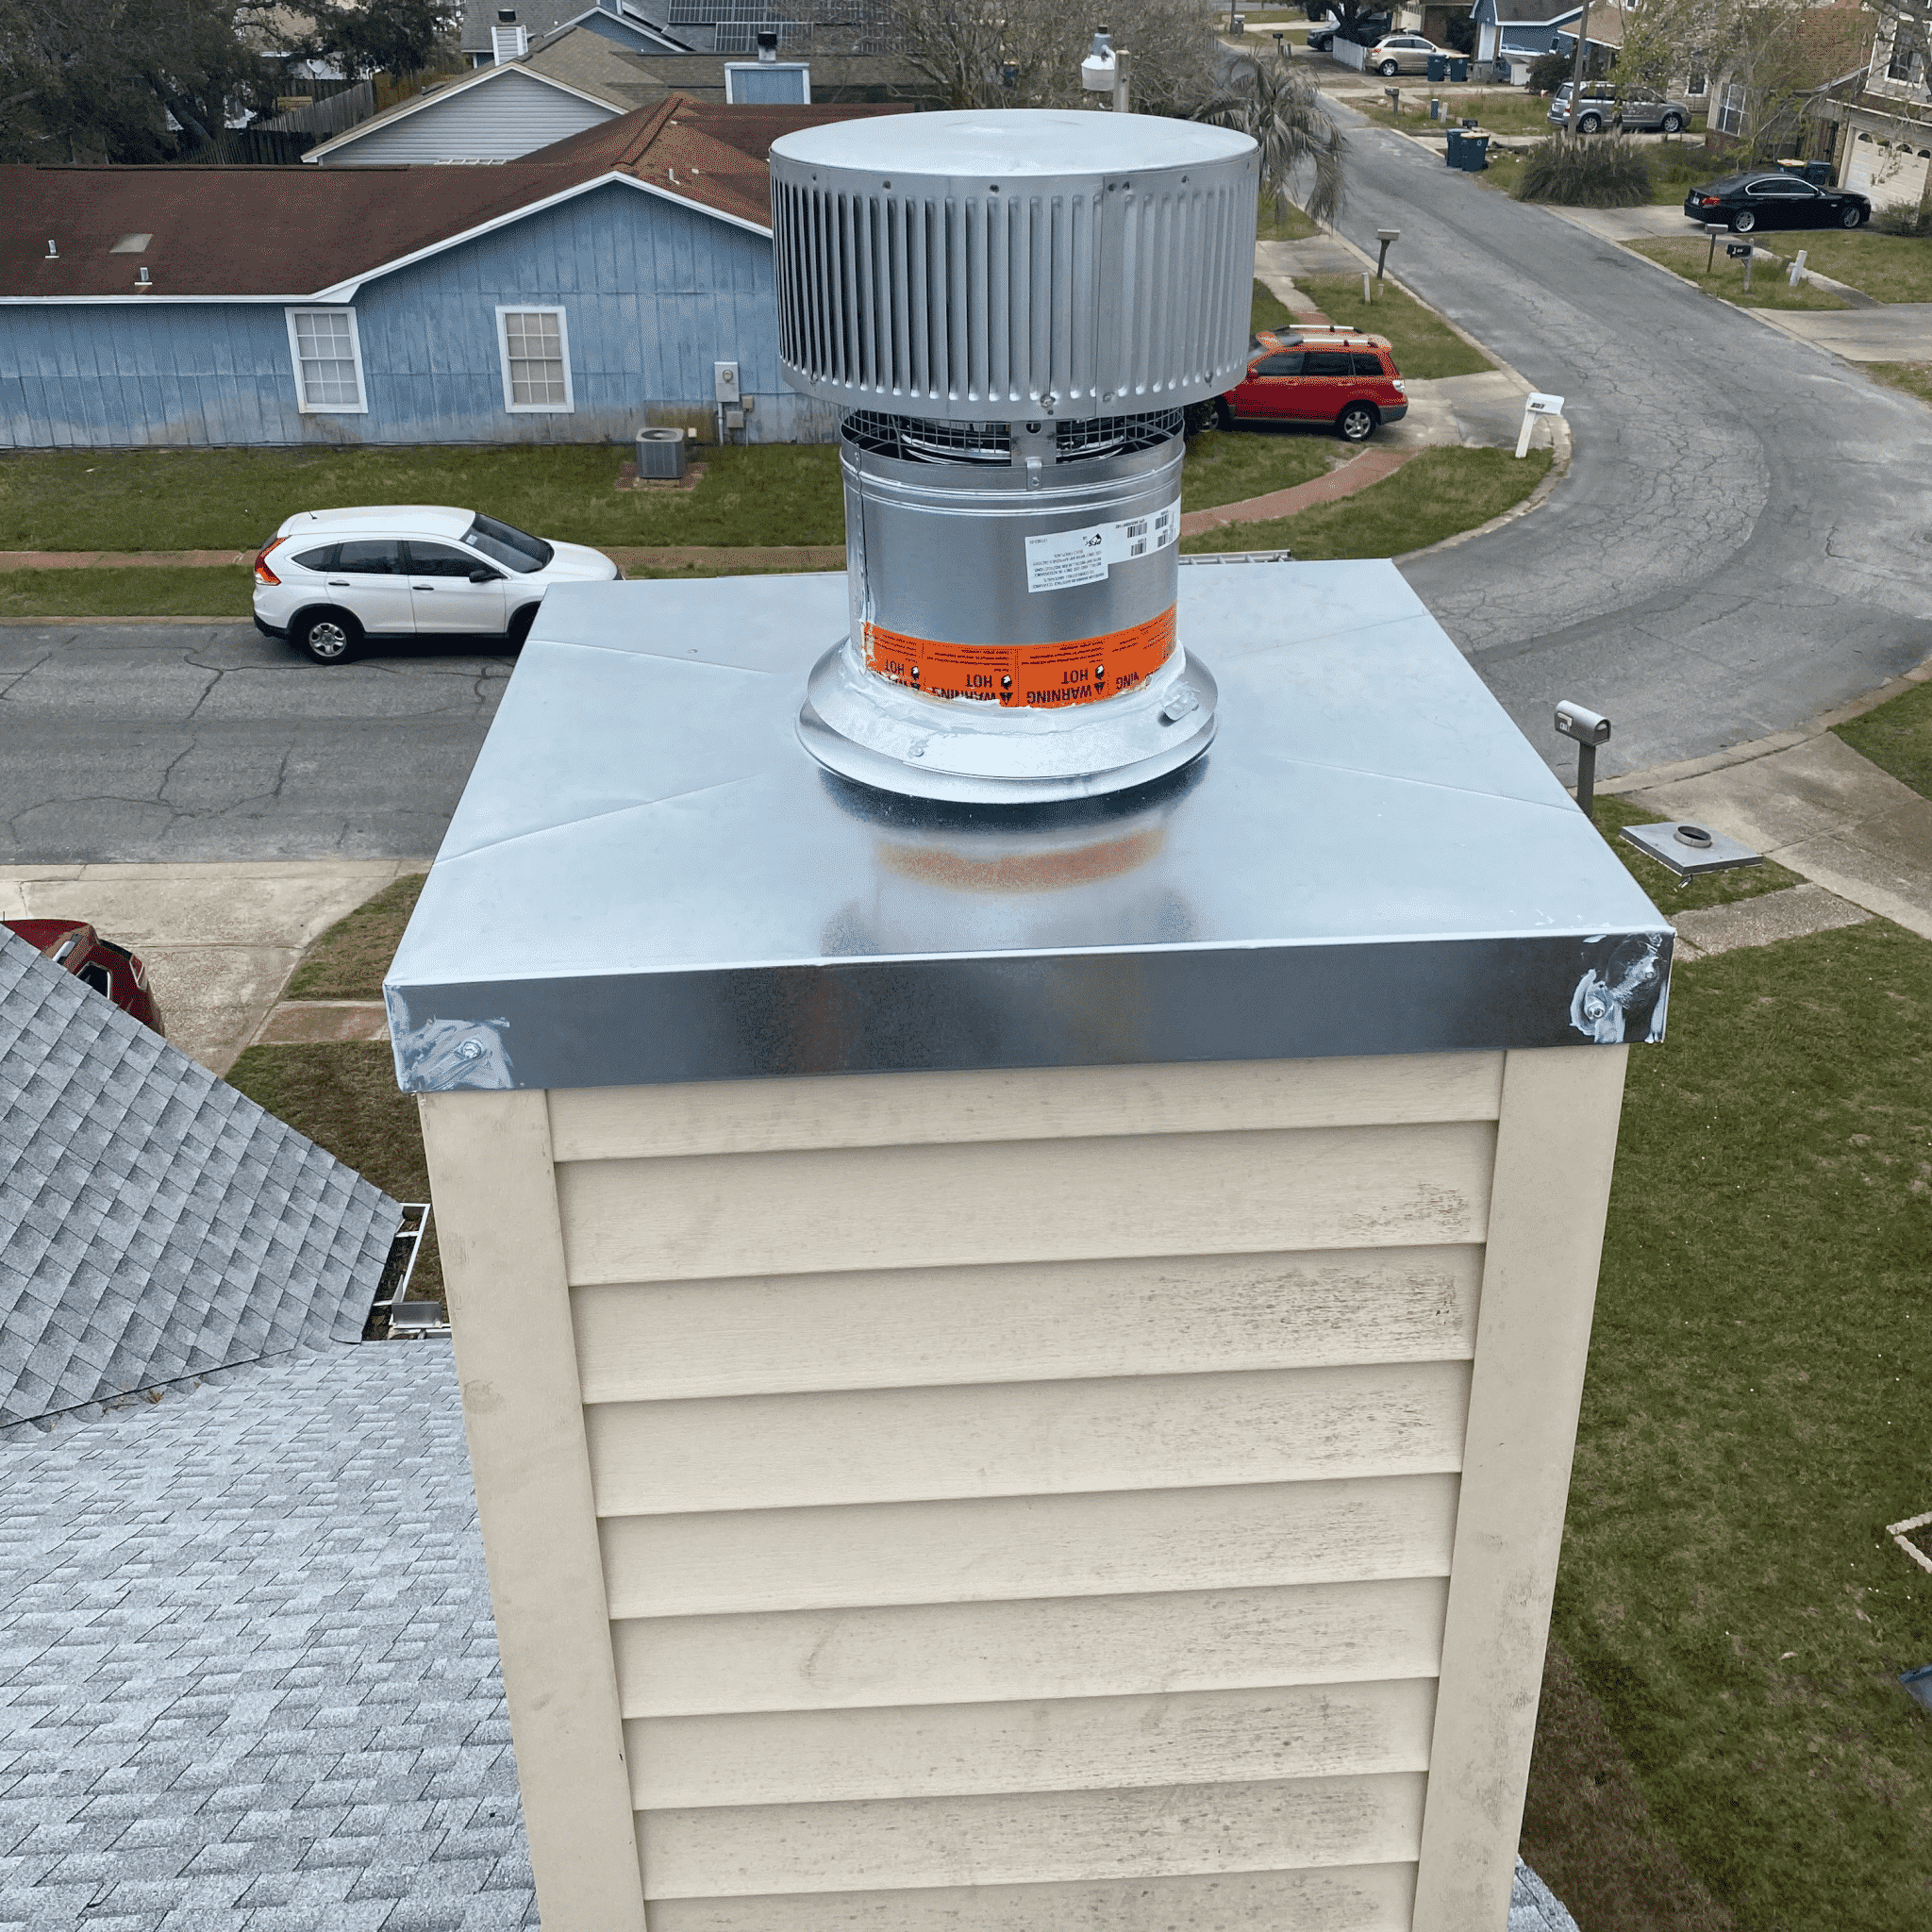 Sootmaster Chimney Services of Gulfport